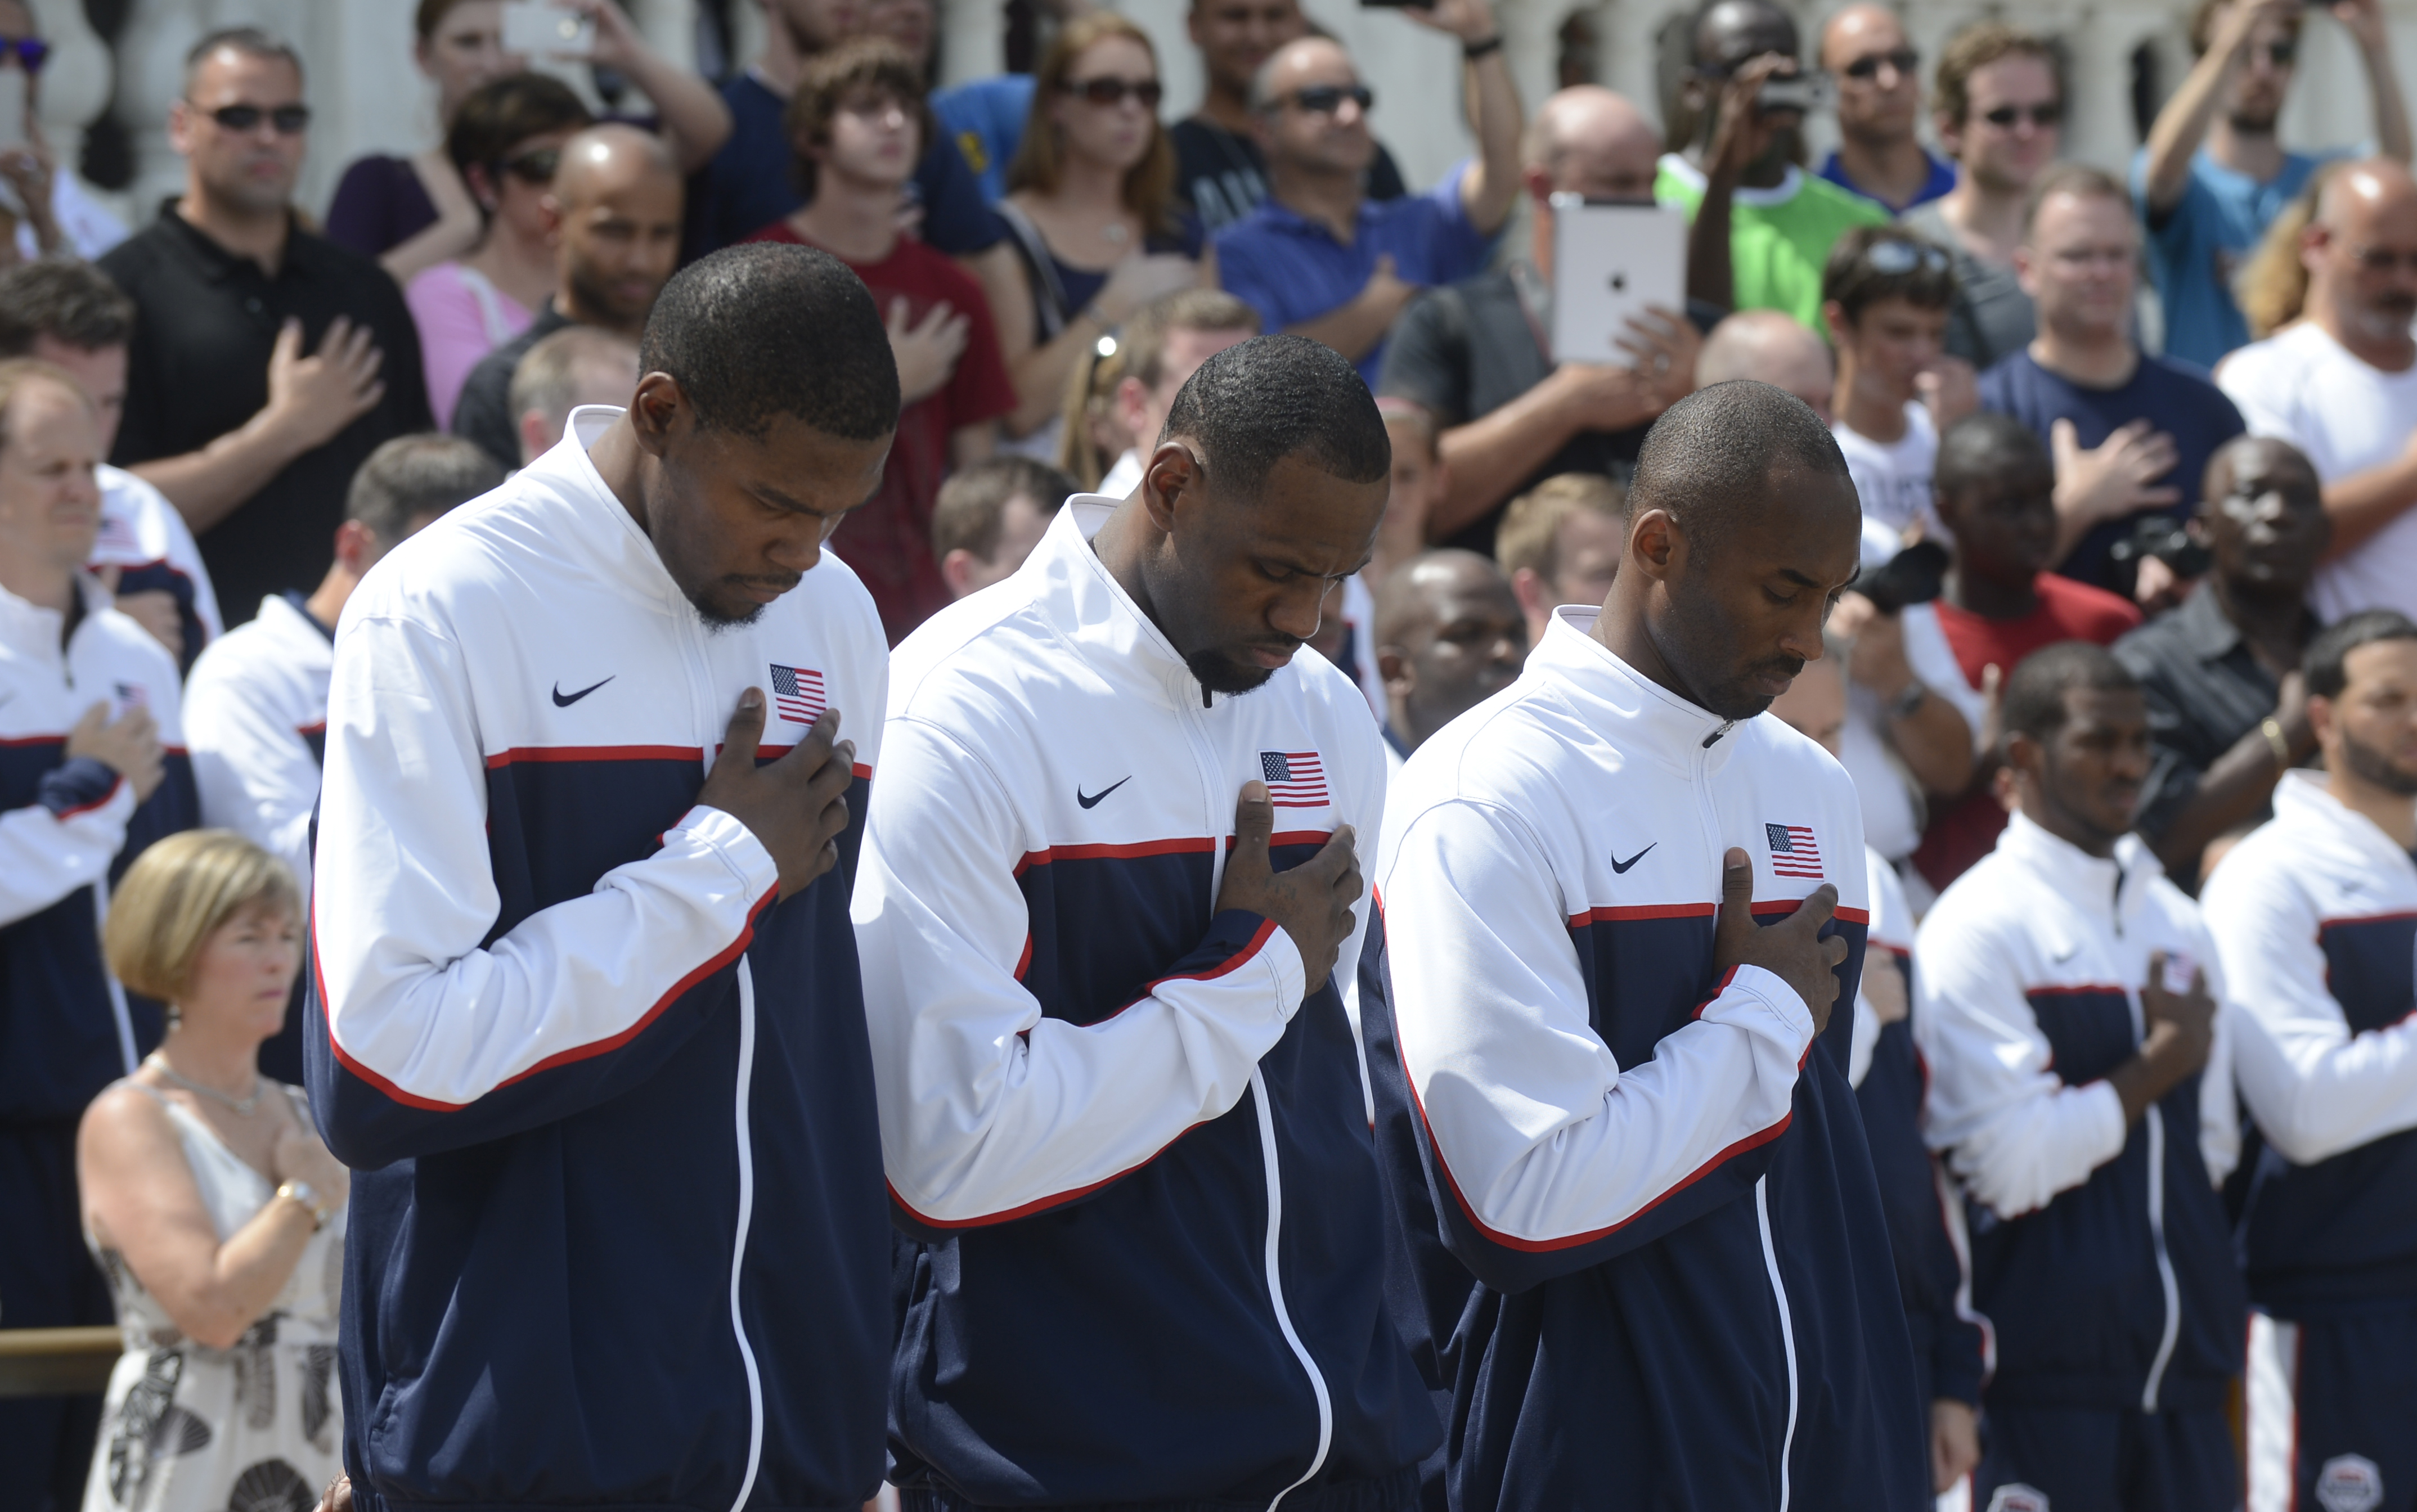 Kevin Durant, Lebron James and Kobe Bryant render honors at the of the Tomb of the Unknown Solider in Arlington National Cemetery, Ft. Myer, Va, Jul. 15, 2012.   DOD photo by D. Myles Cullen